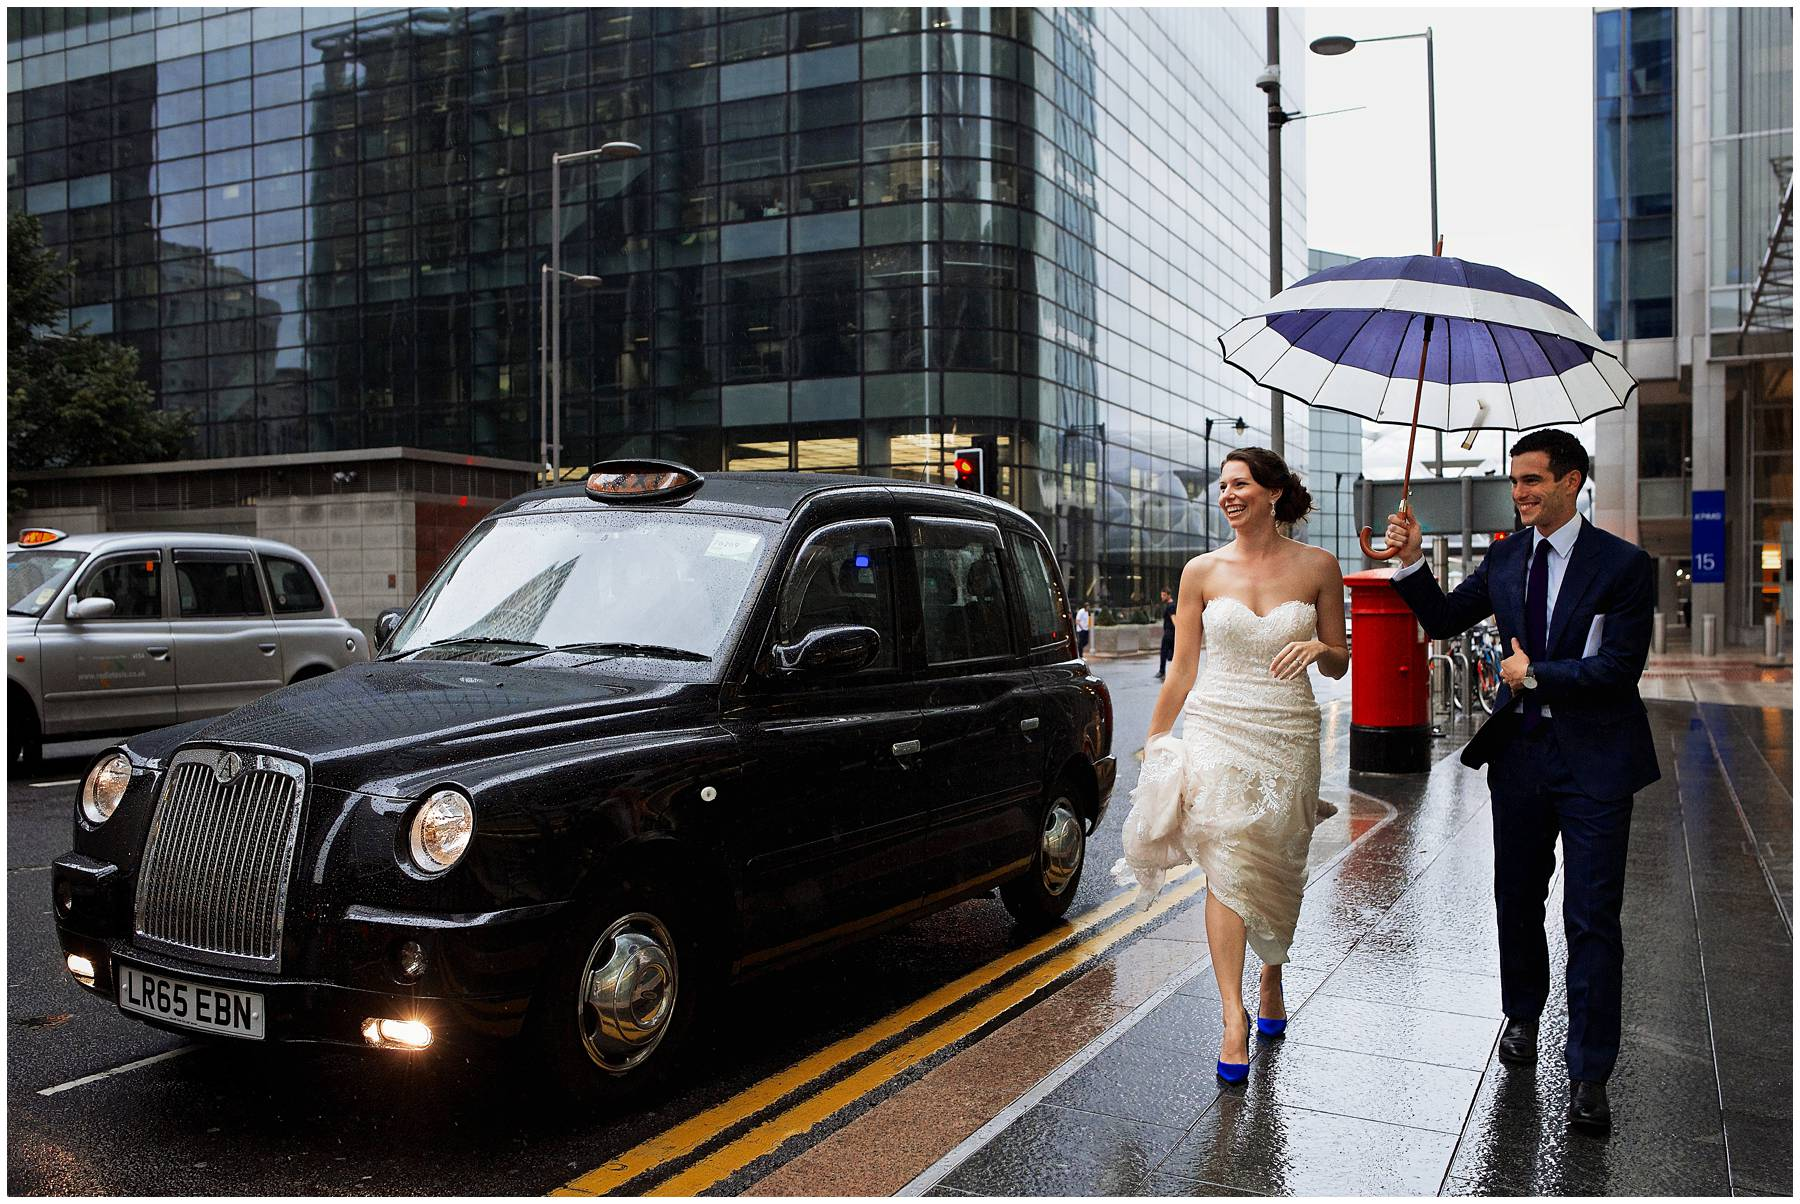 Wedding in Canary Wharf